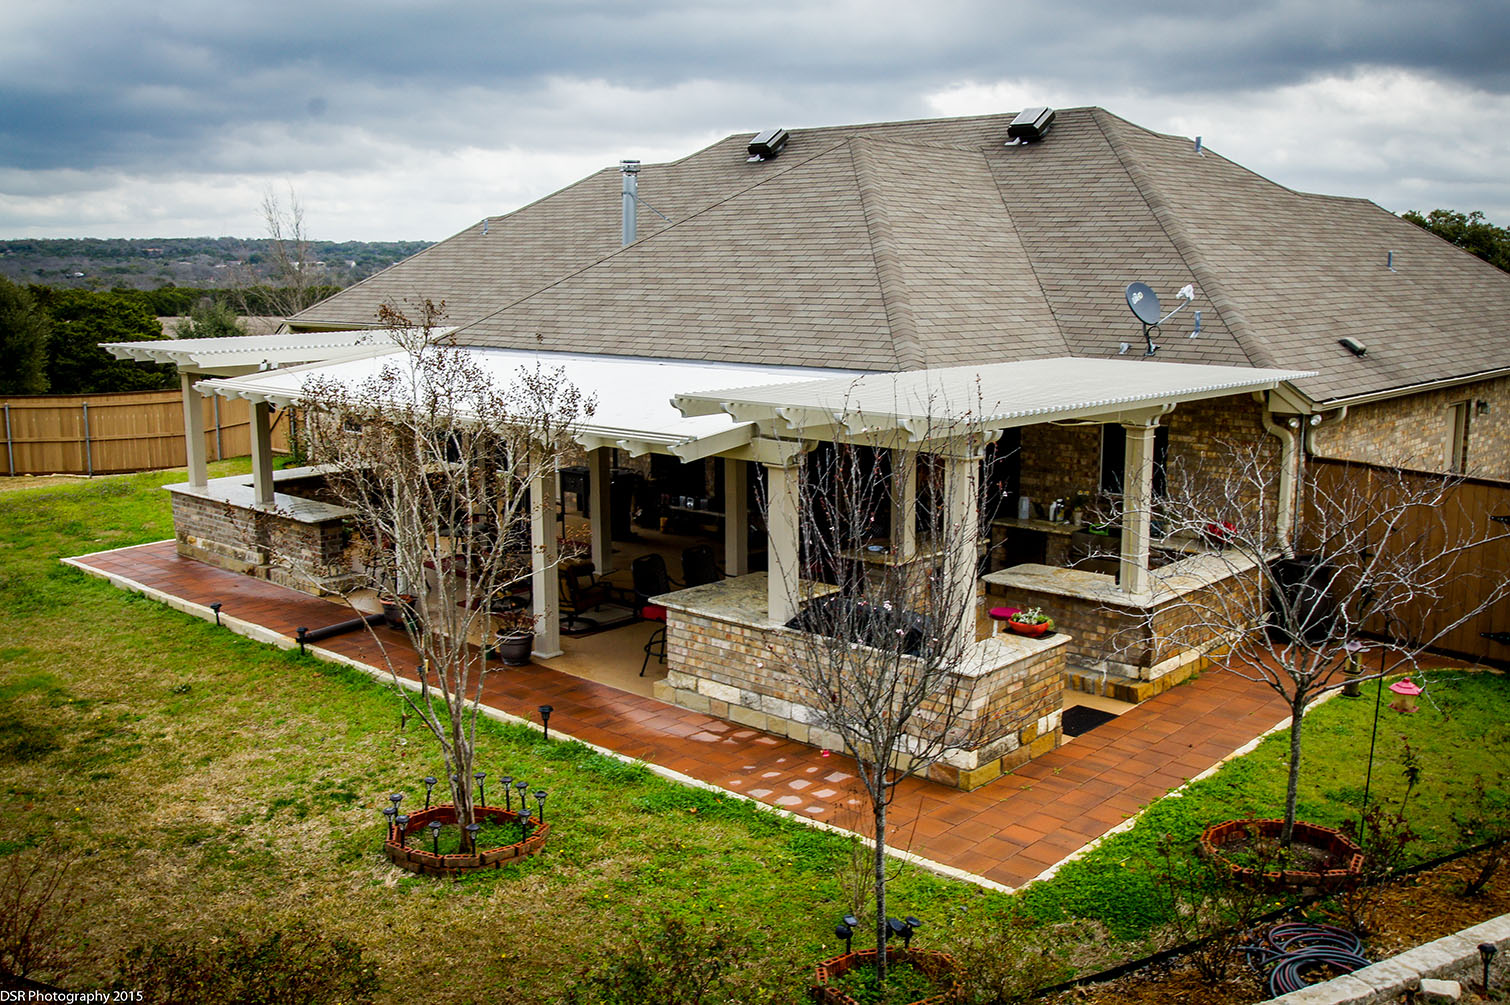 Patio Covers Temple Waco Killeen (2).jpg (1510×1005